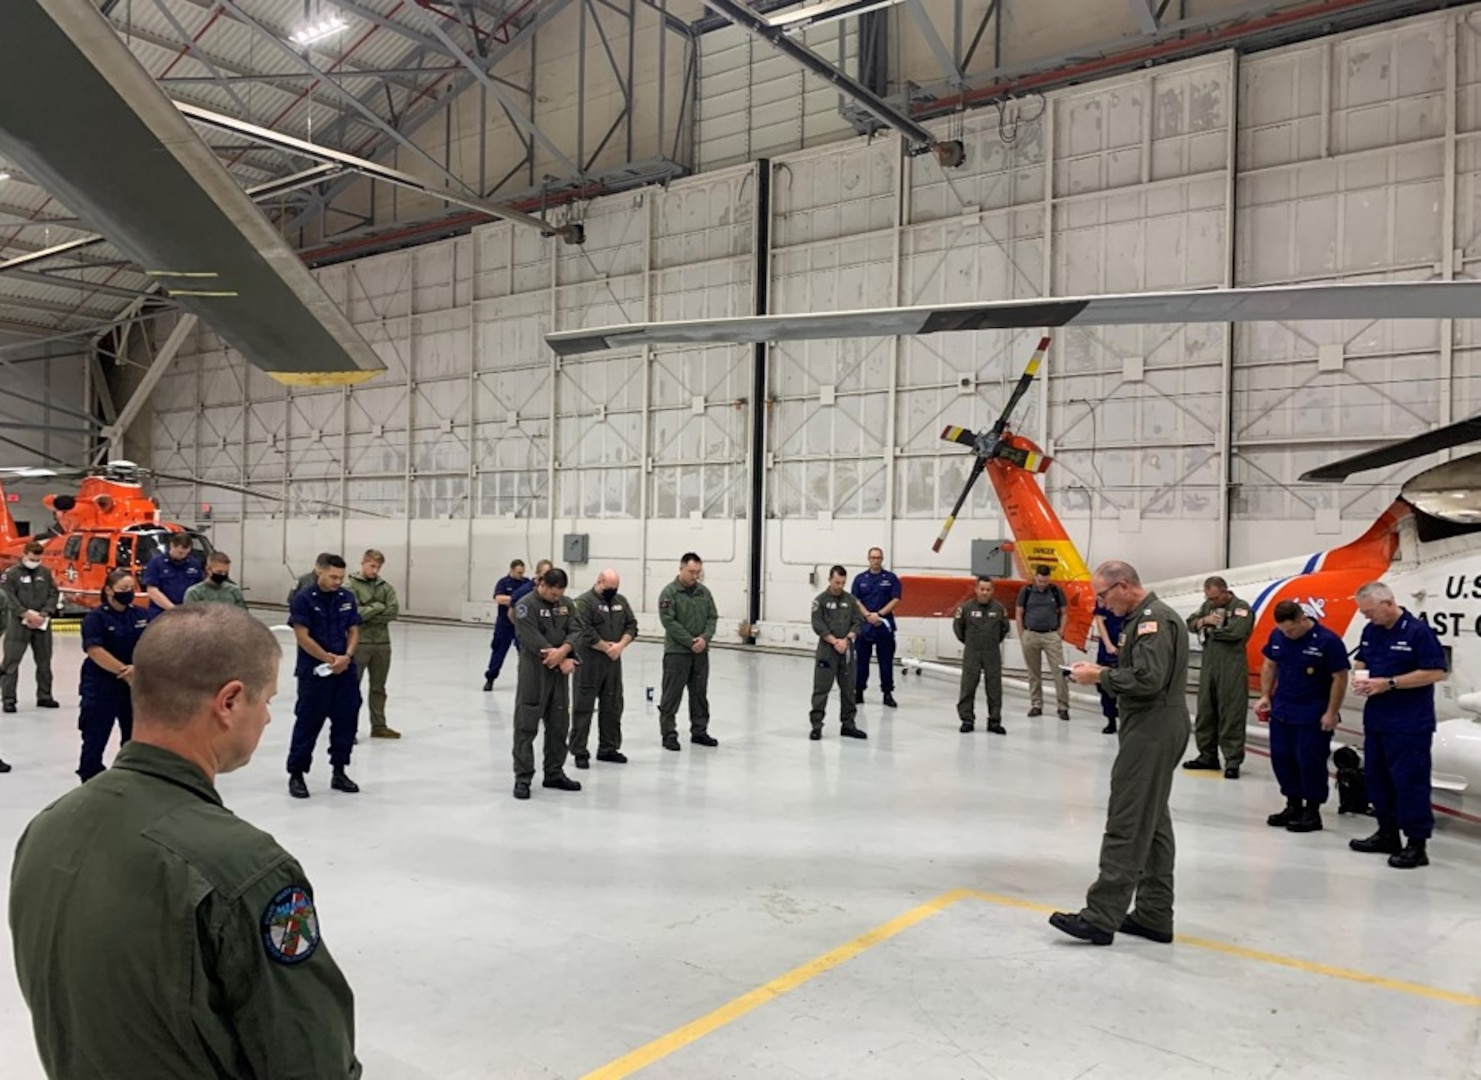 Chaplain Doyle Allen leading aircrews from around the CG (to include the Atlantic Area Commander and CMC) in a prayer for courage, strength, and protection – just moments before launching on recovery missions after Hurricane Ida passage.